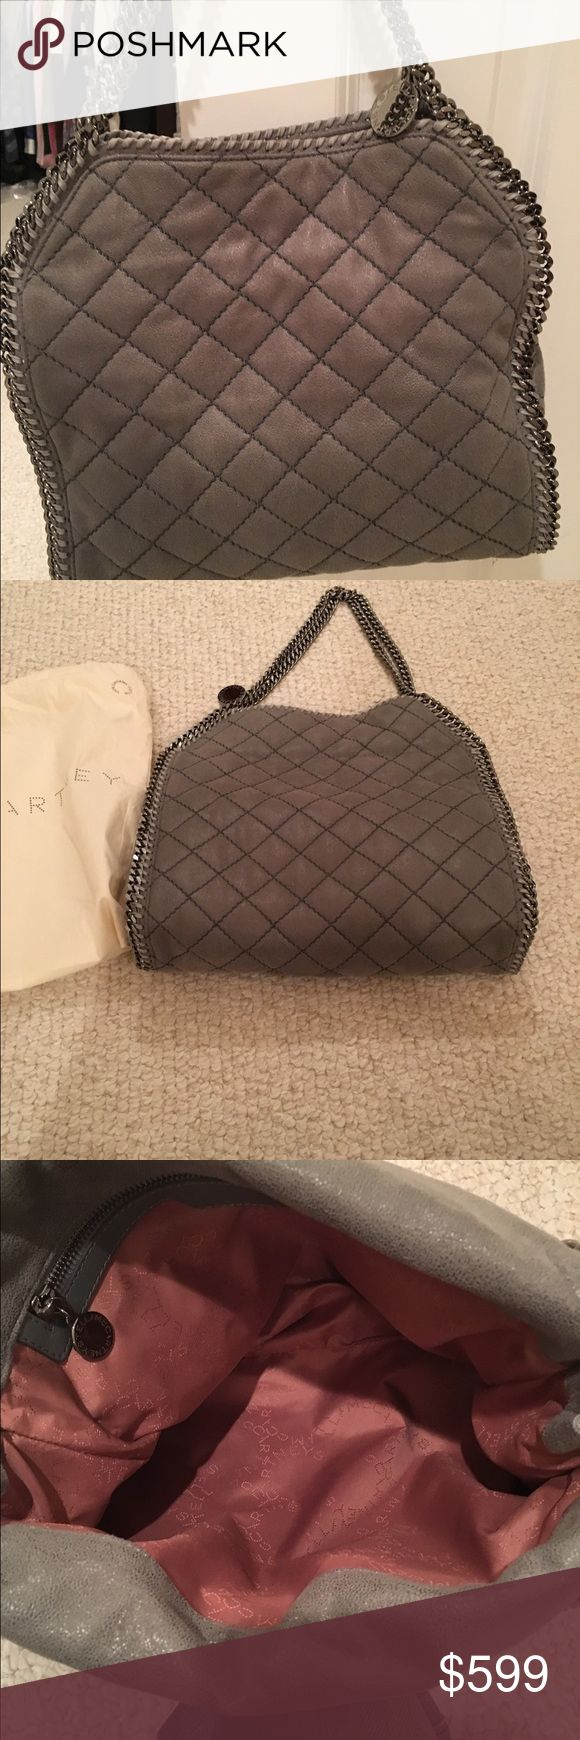 Stella McCartney Falabella Gorgeous & only carried once! Stella McCartney gray quilted suede small Falabella shoulder bag. This is Stella's most famous style & still for sale at NORDSTROM.  Silver chain straps & lightweight!  Large inside zipper pocket. Stella McCartney Bags Shoulder Bags